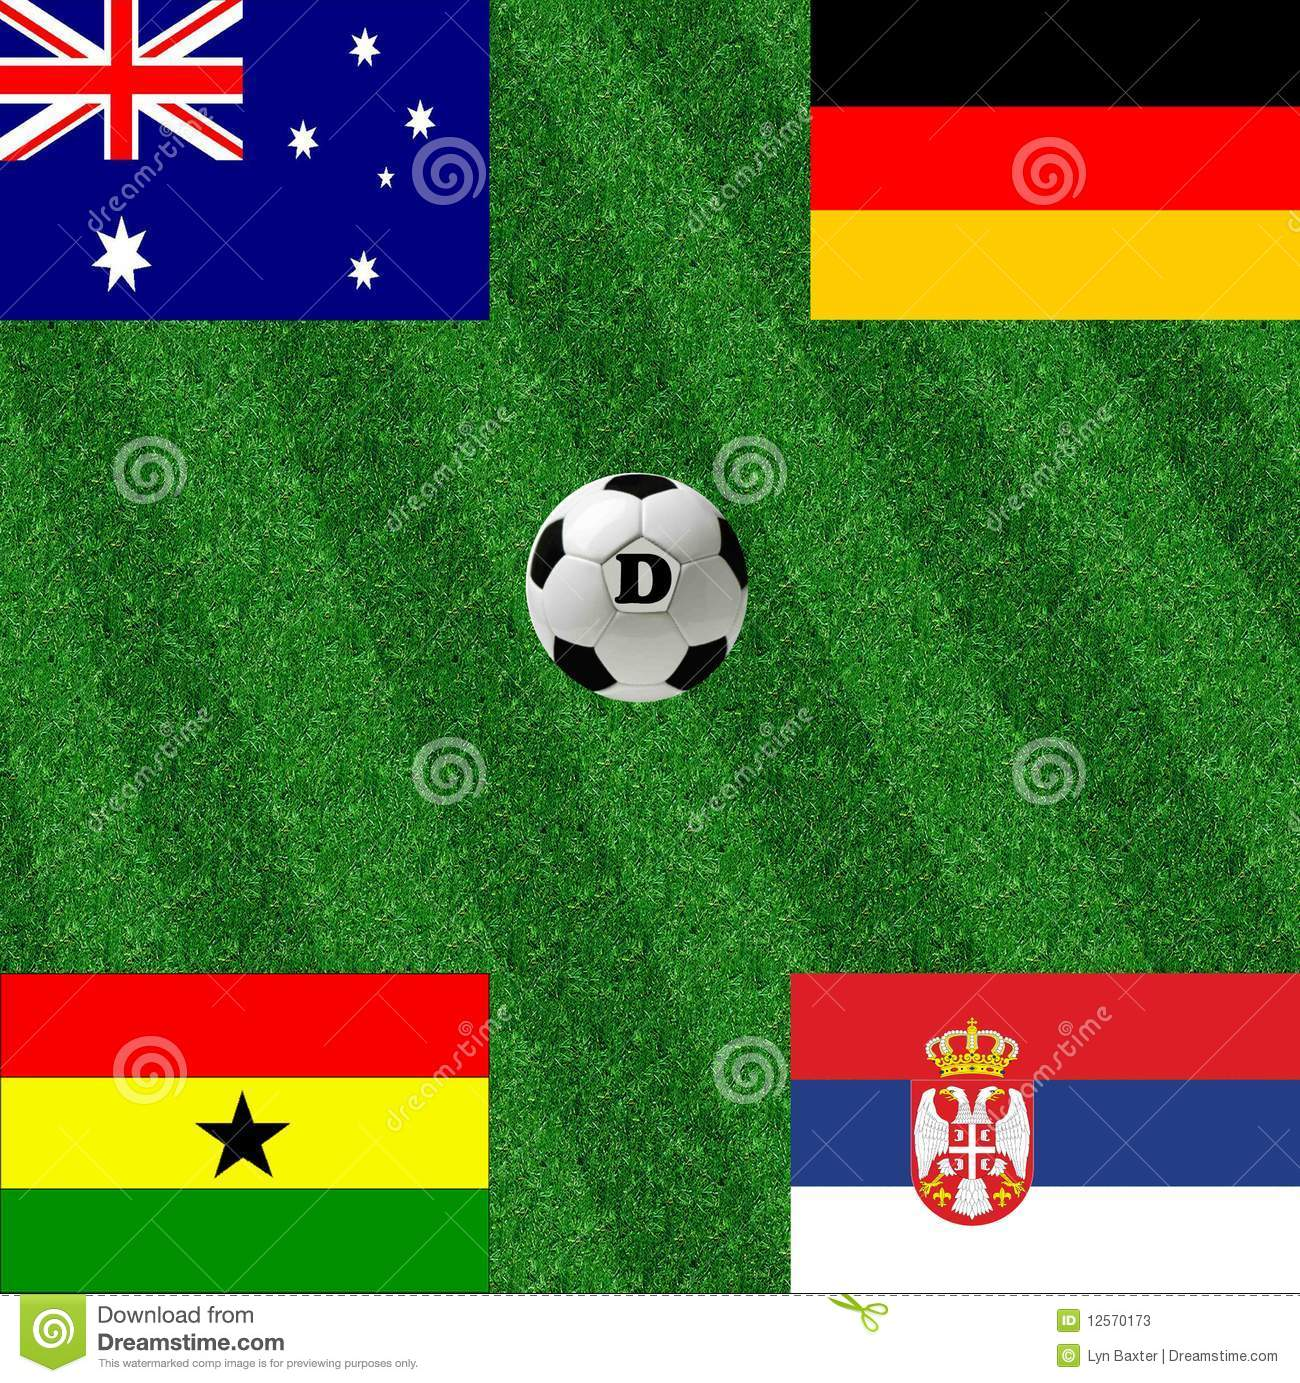 Group D world cup soccer